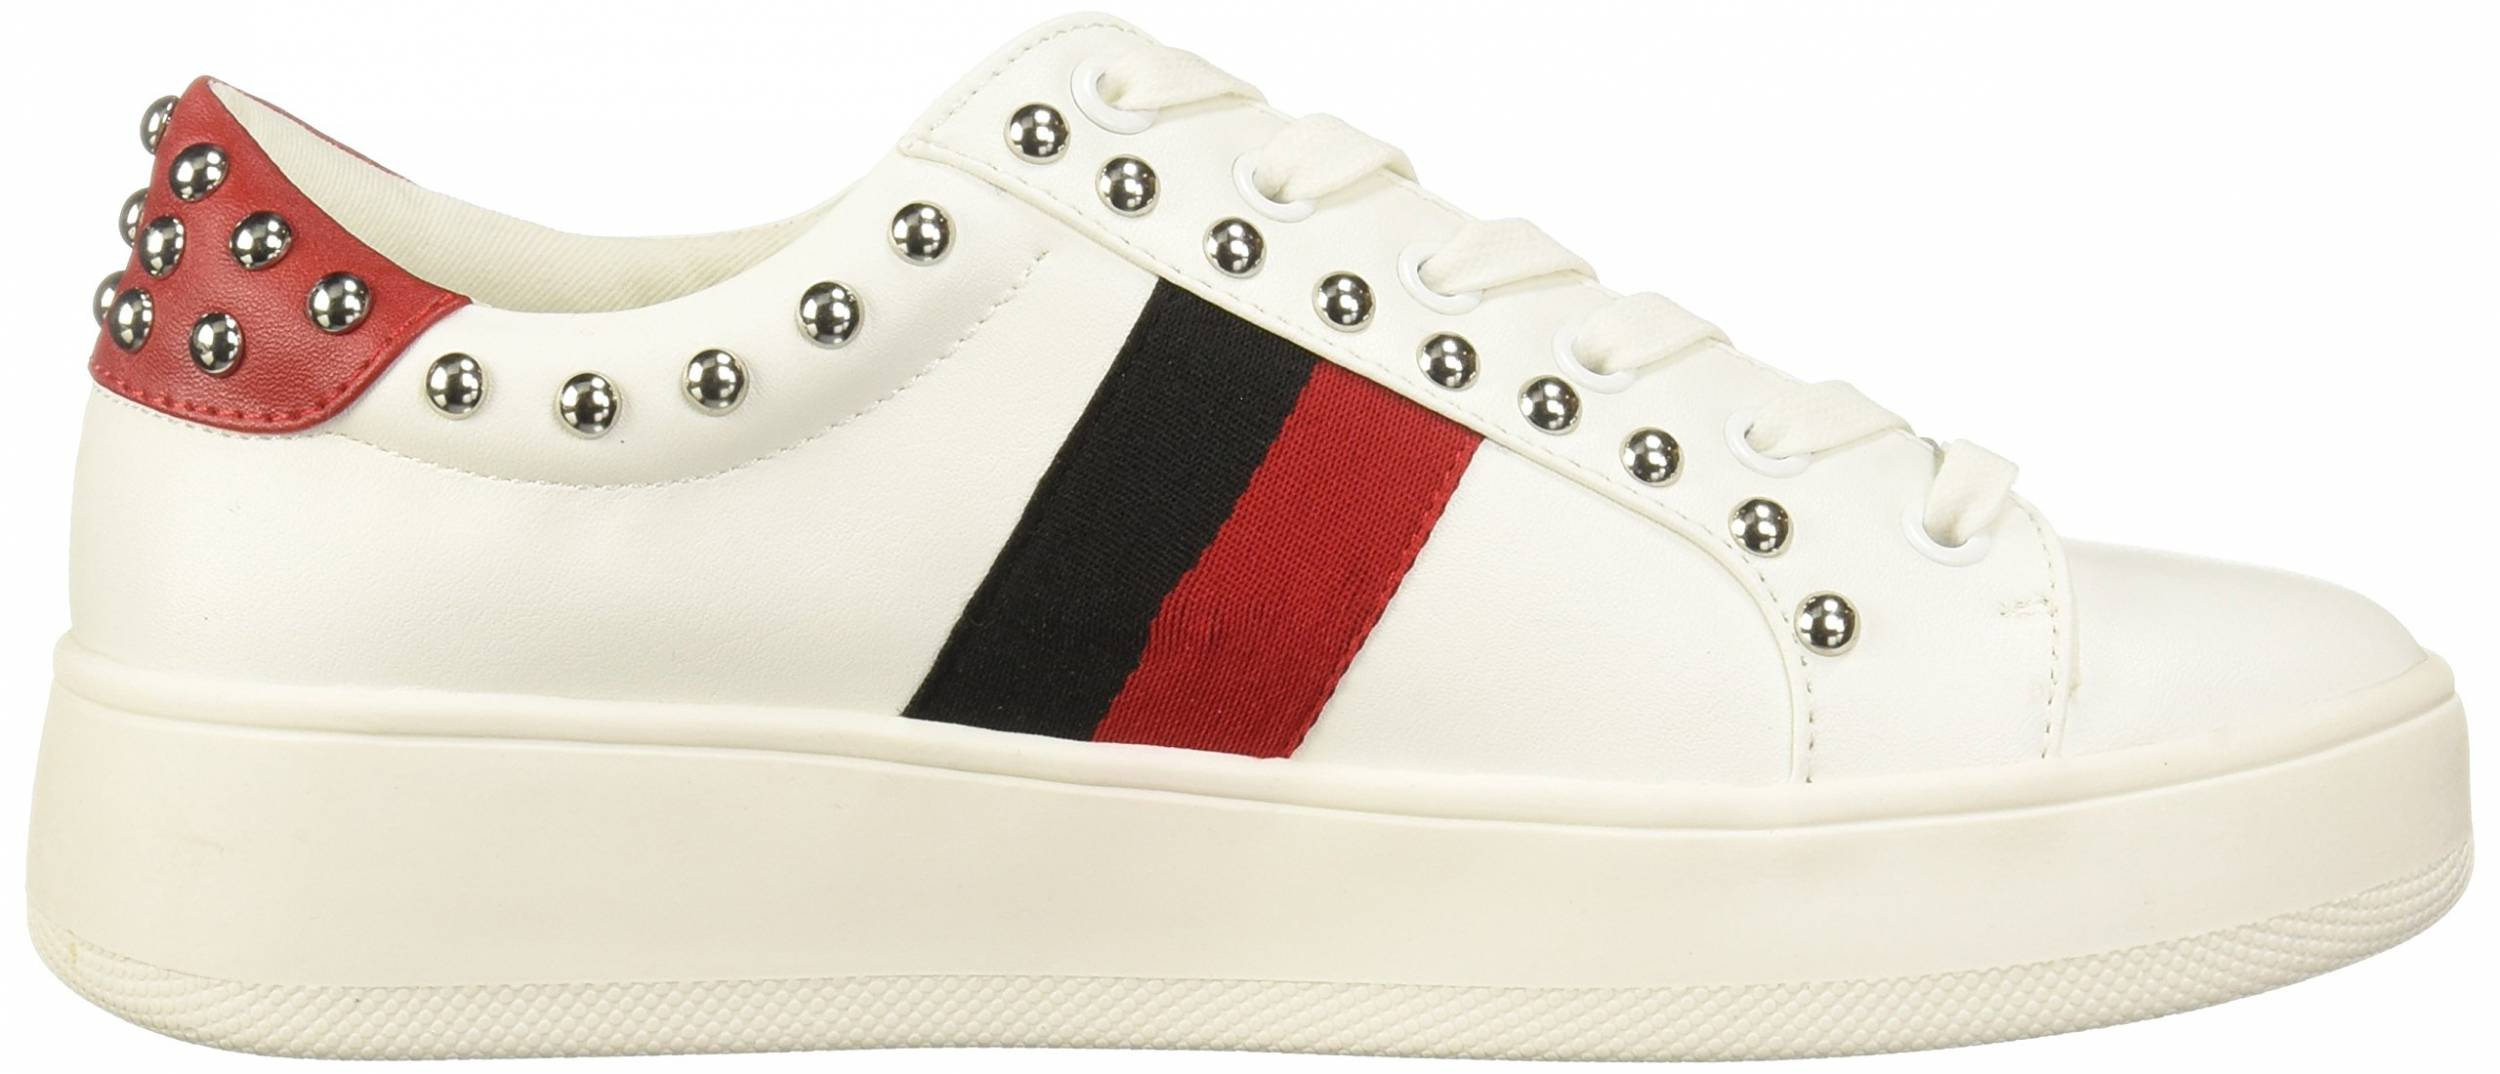 Corea canta Inútil  Steve Madden Belle sneakers in white (only $60)   RunRepeat